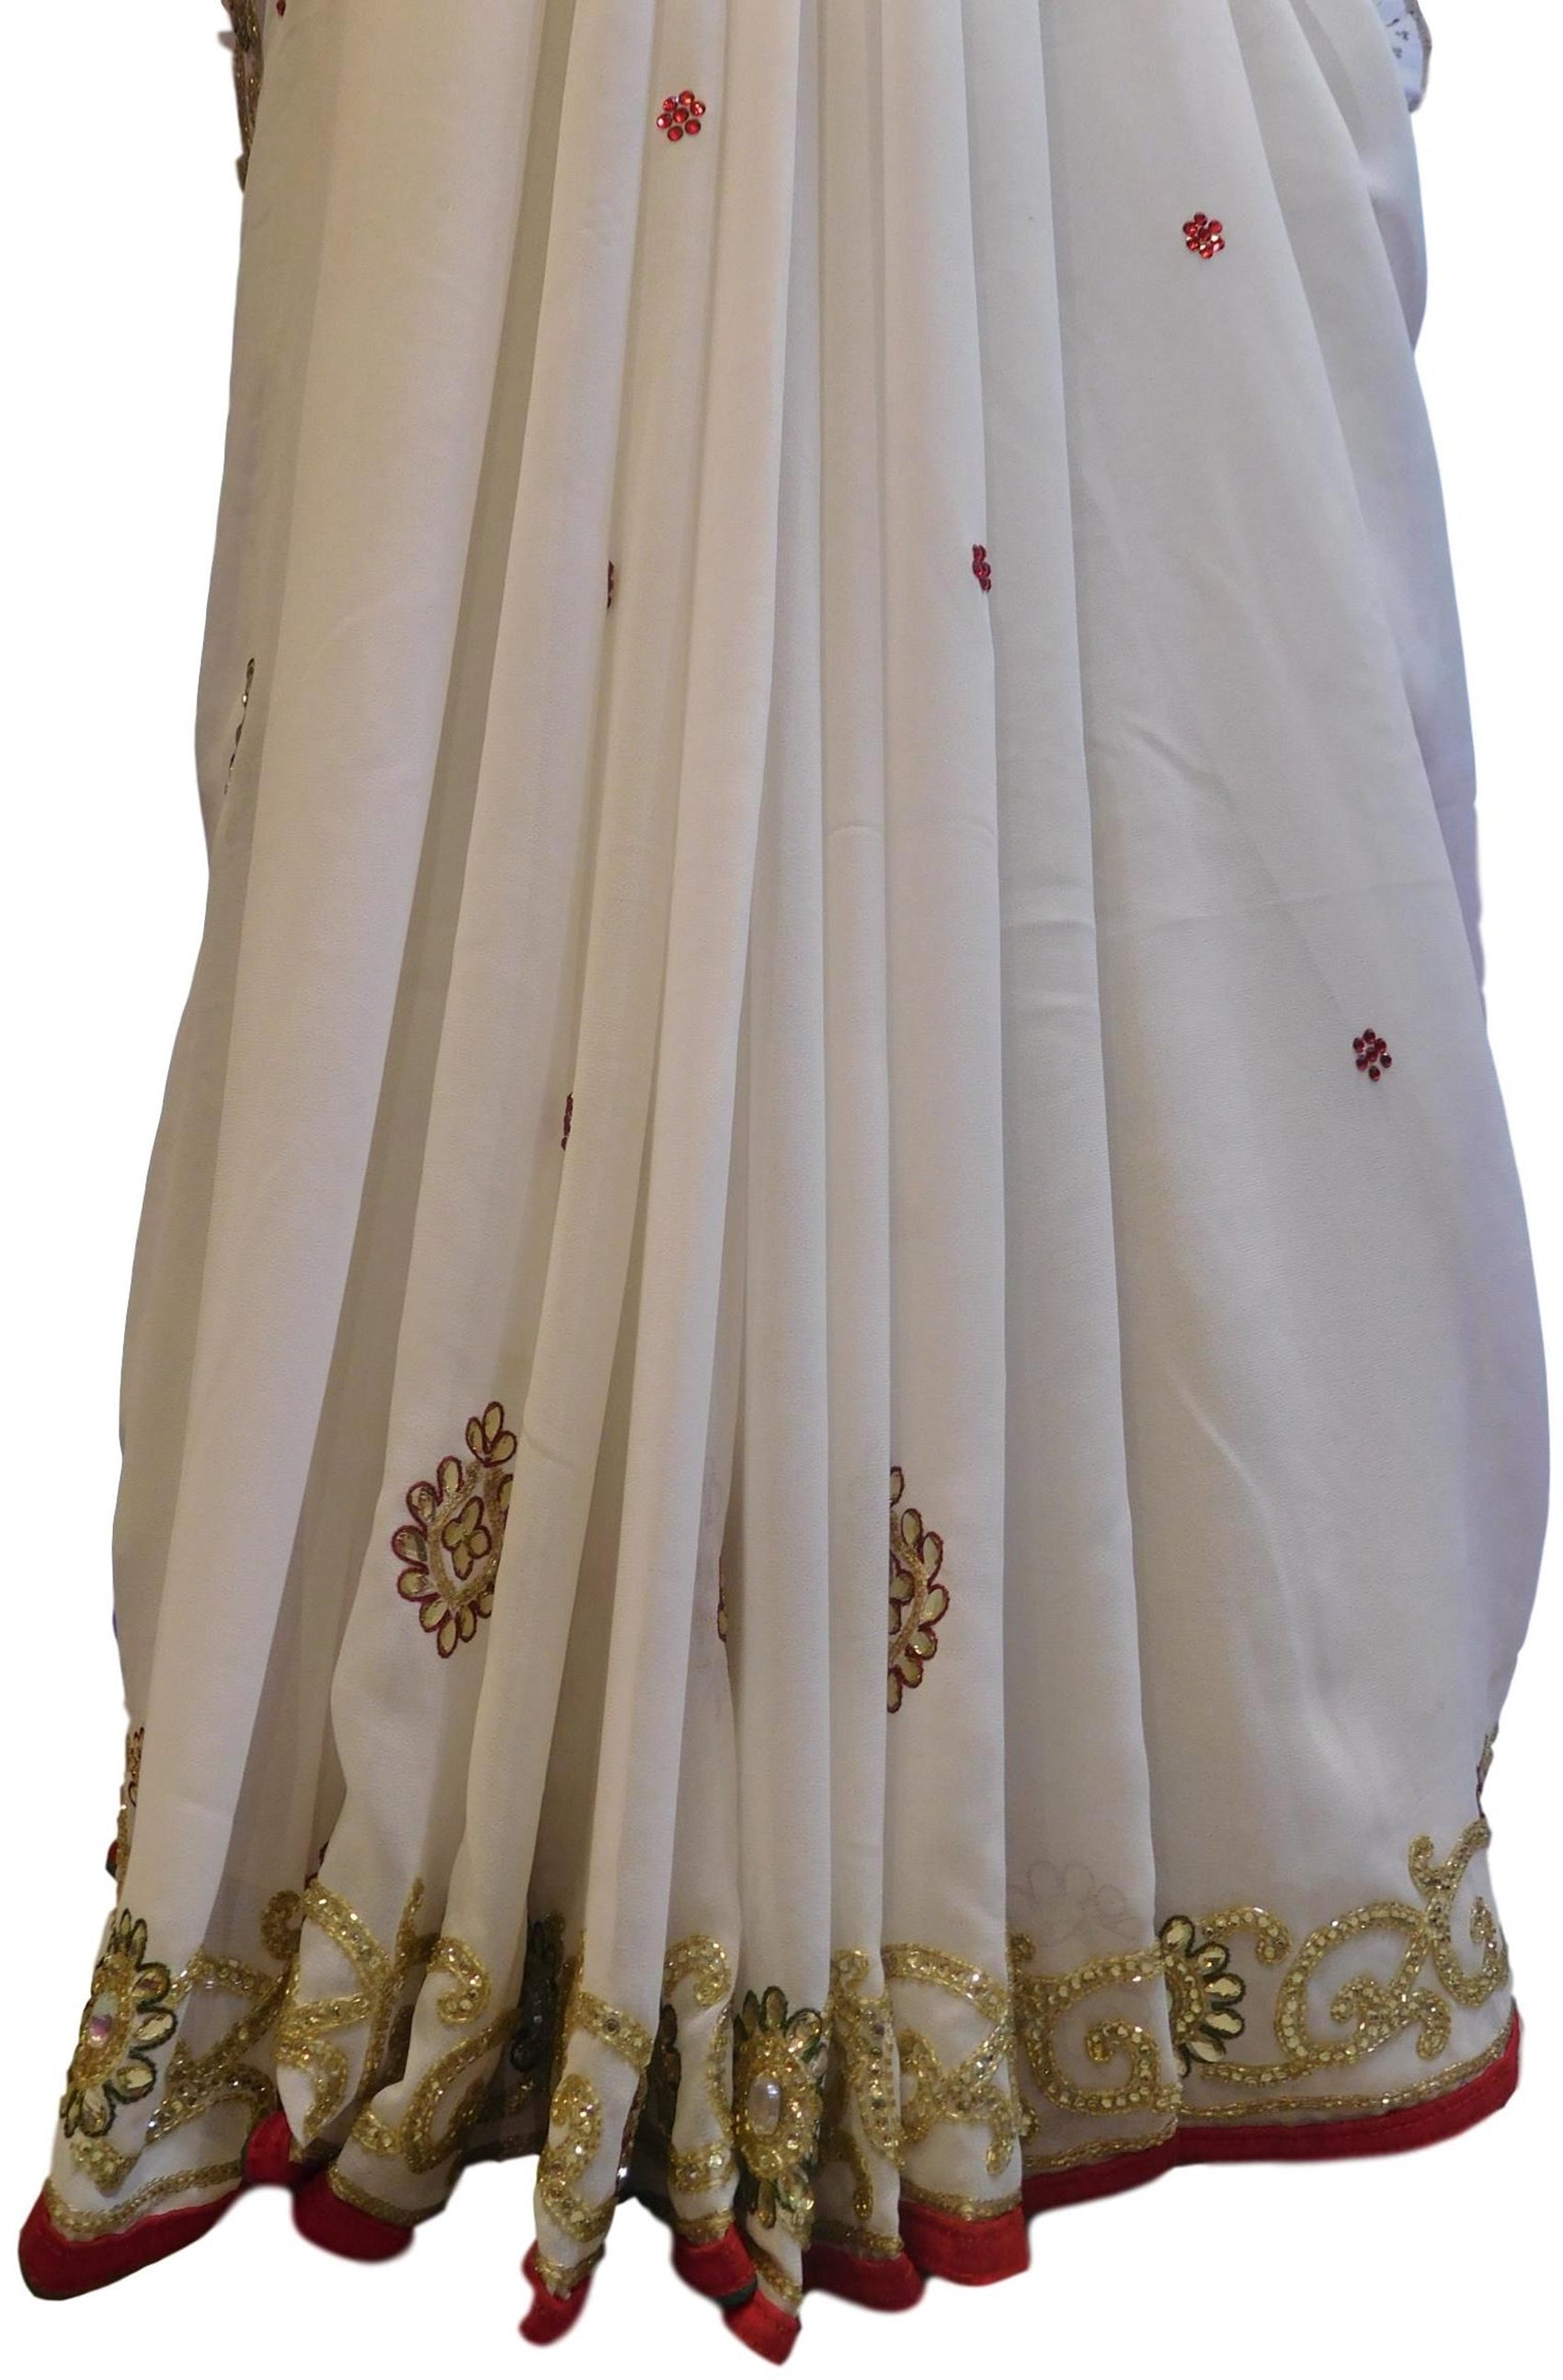 White Designer Wedding Partywear Georgette Hand Embroidery Zari Bullion Stone Thread Work Kolkata Heavy Cutwork Border Saree Sari E234